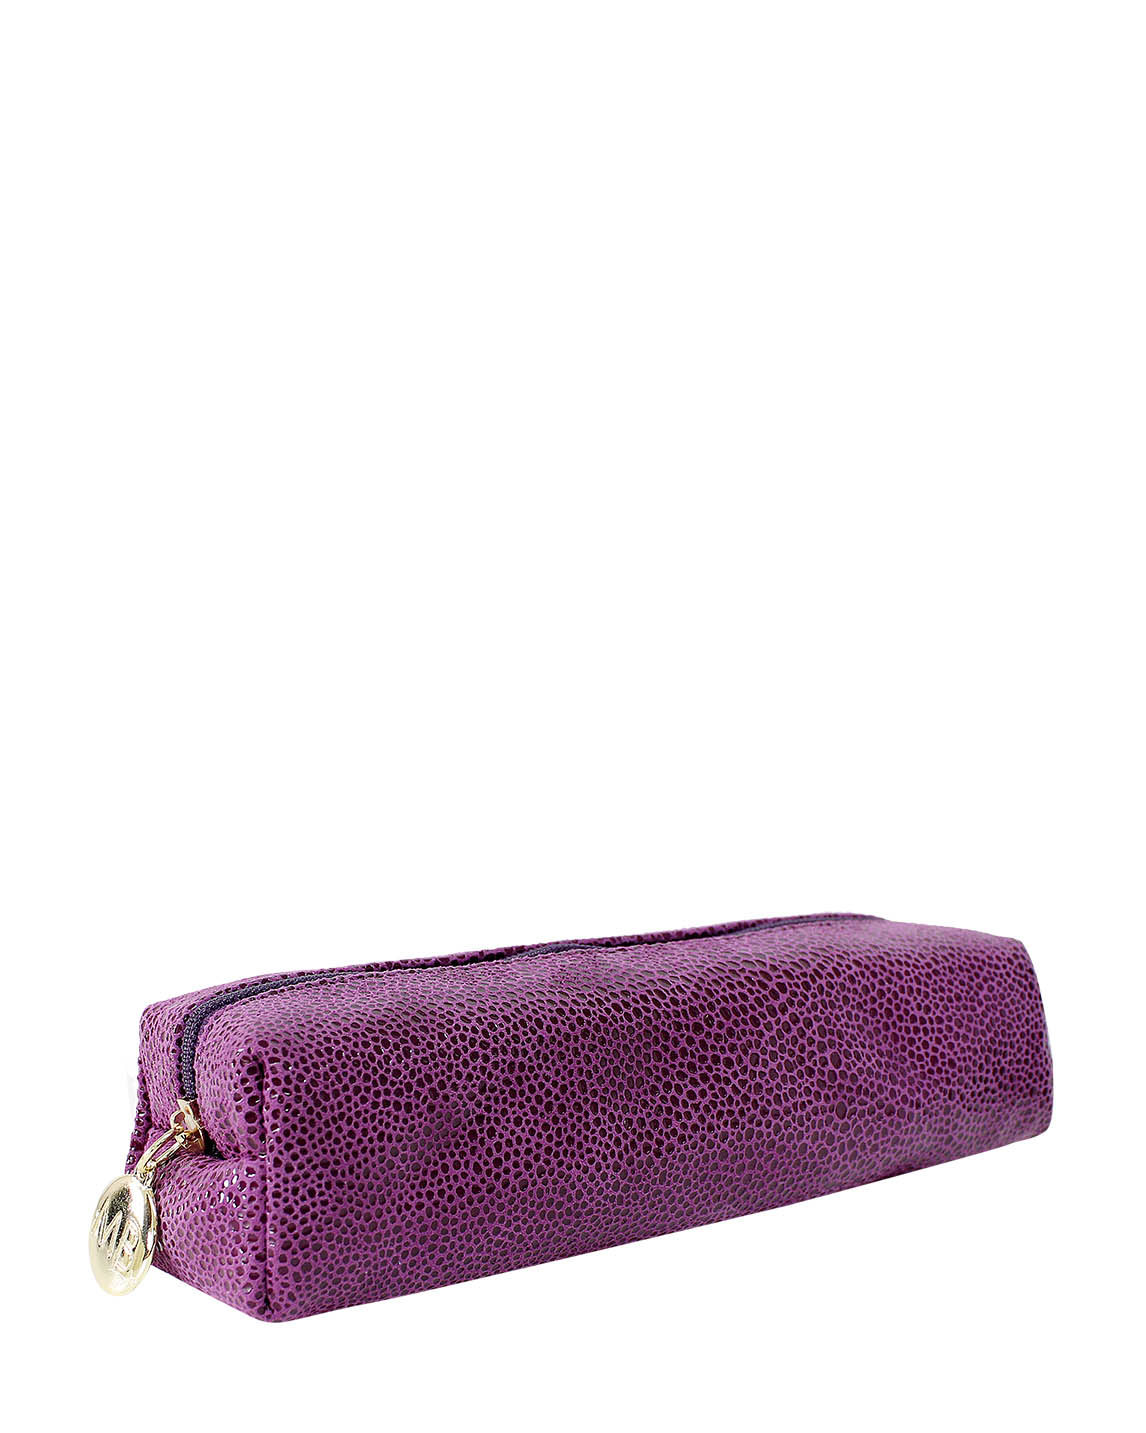 Monedero M-81 Color Morado